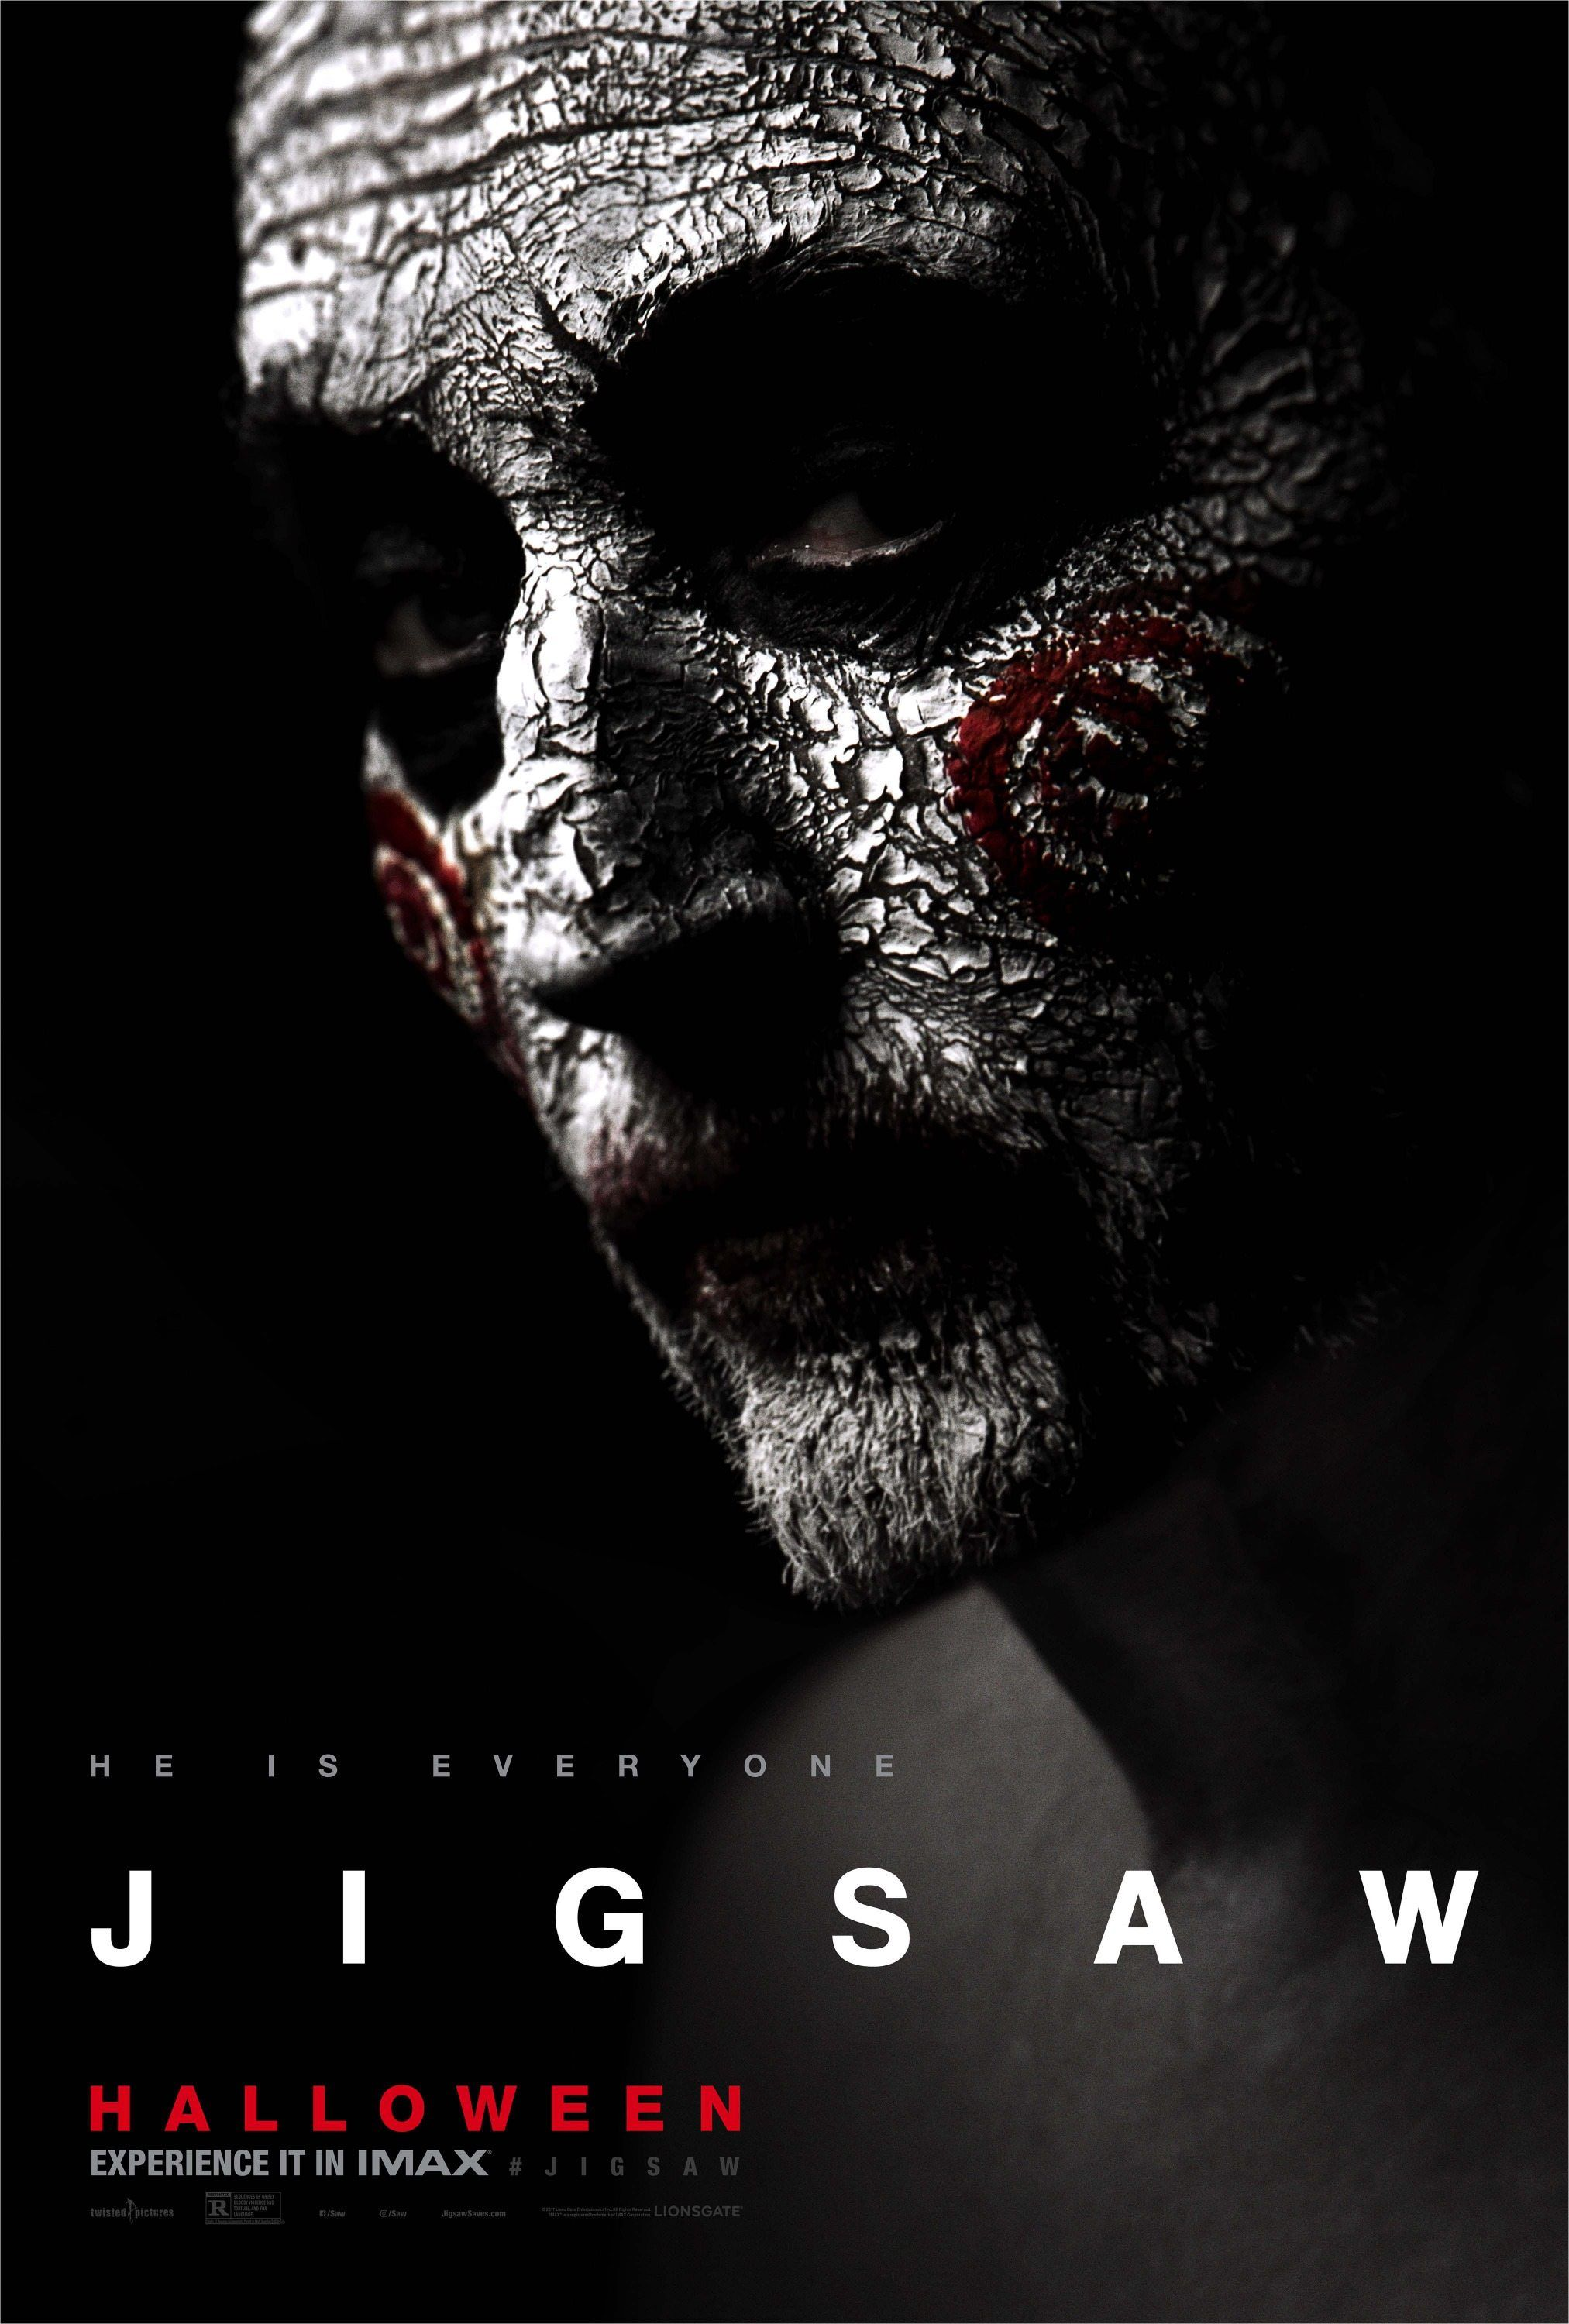 Jigsaw 2017 Hd Wallpaper From Gallsourcecom Movies Books